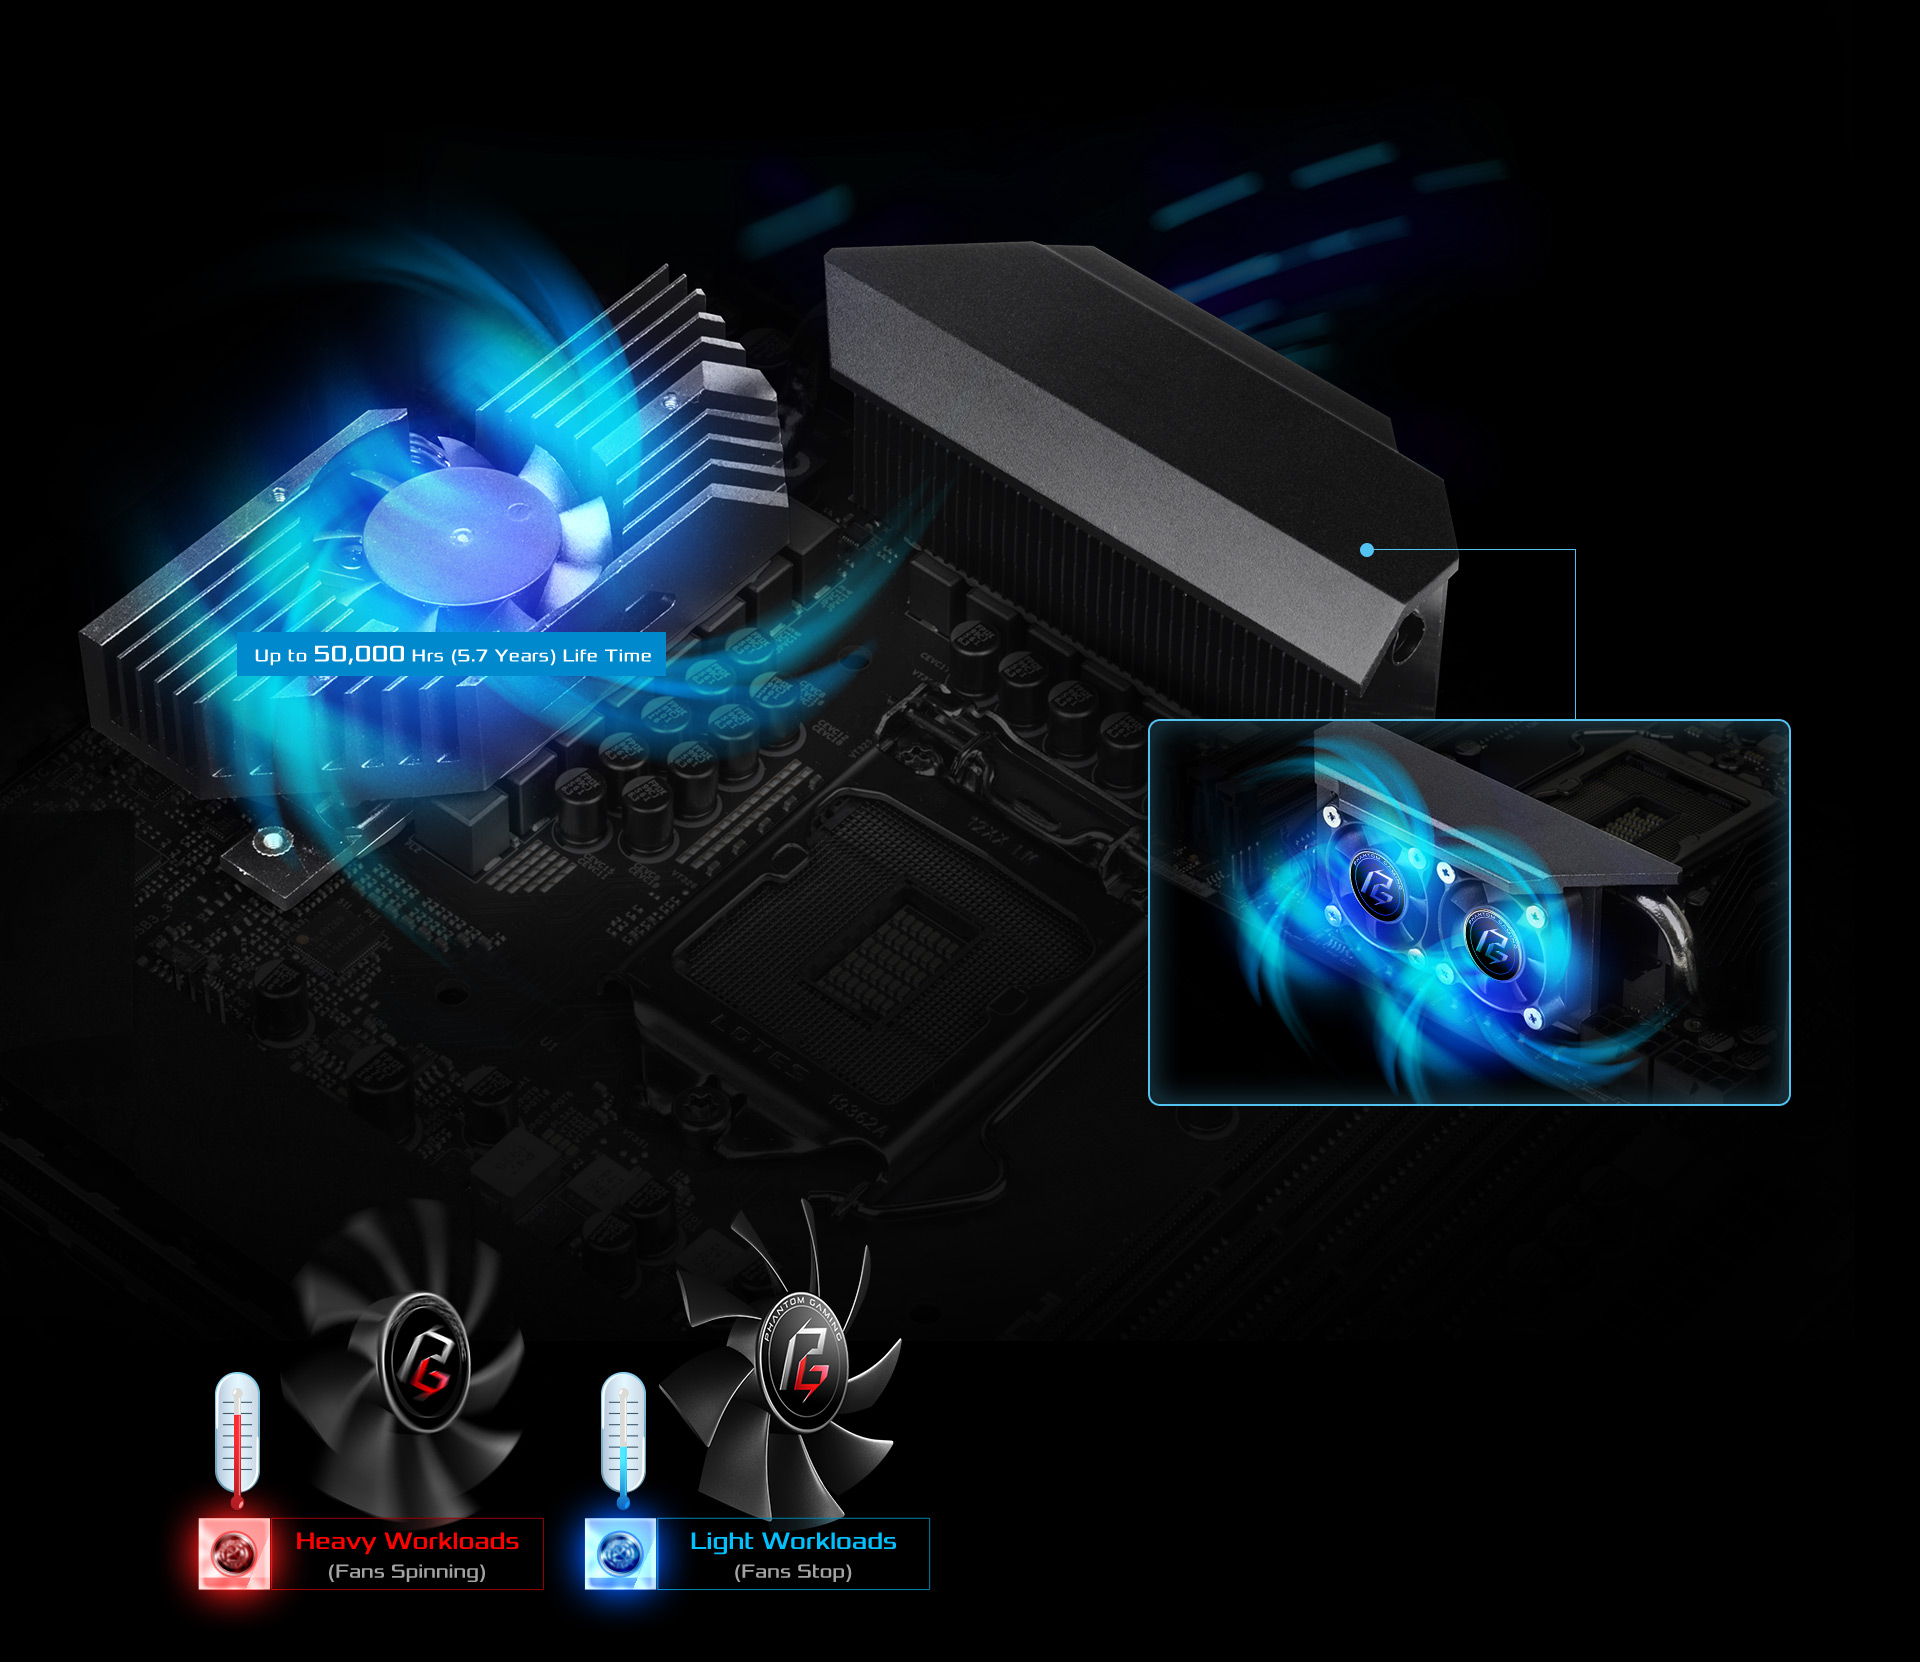 Water Cooling of the motherboard